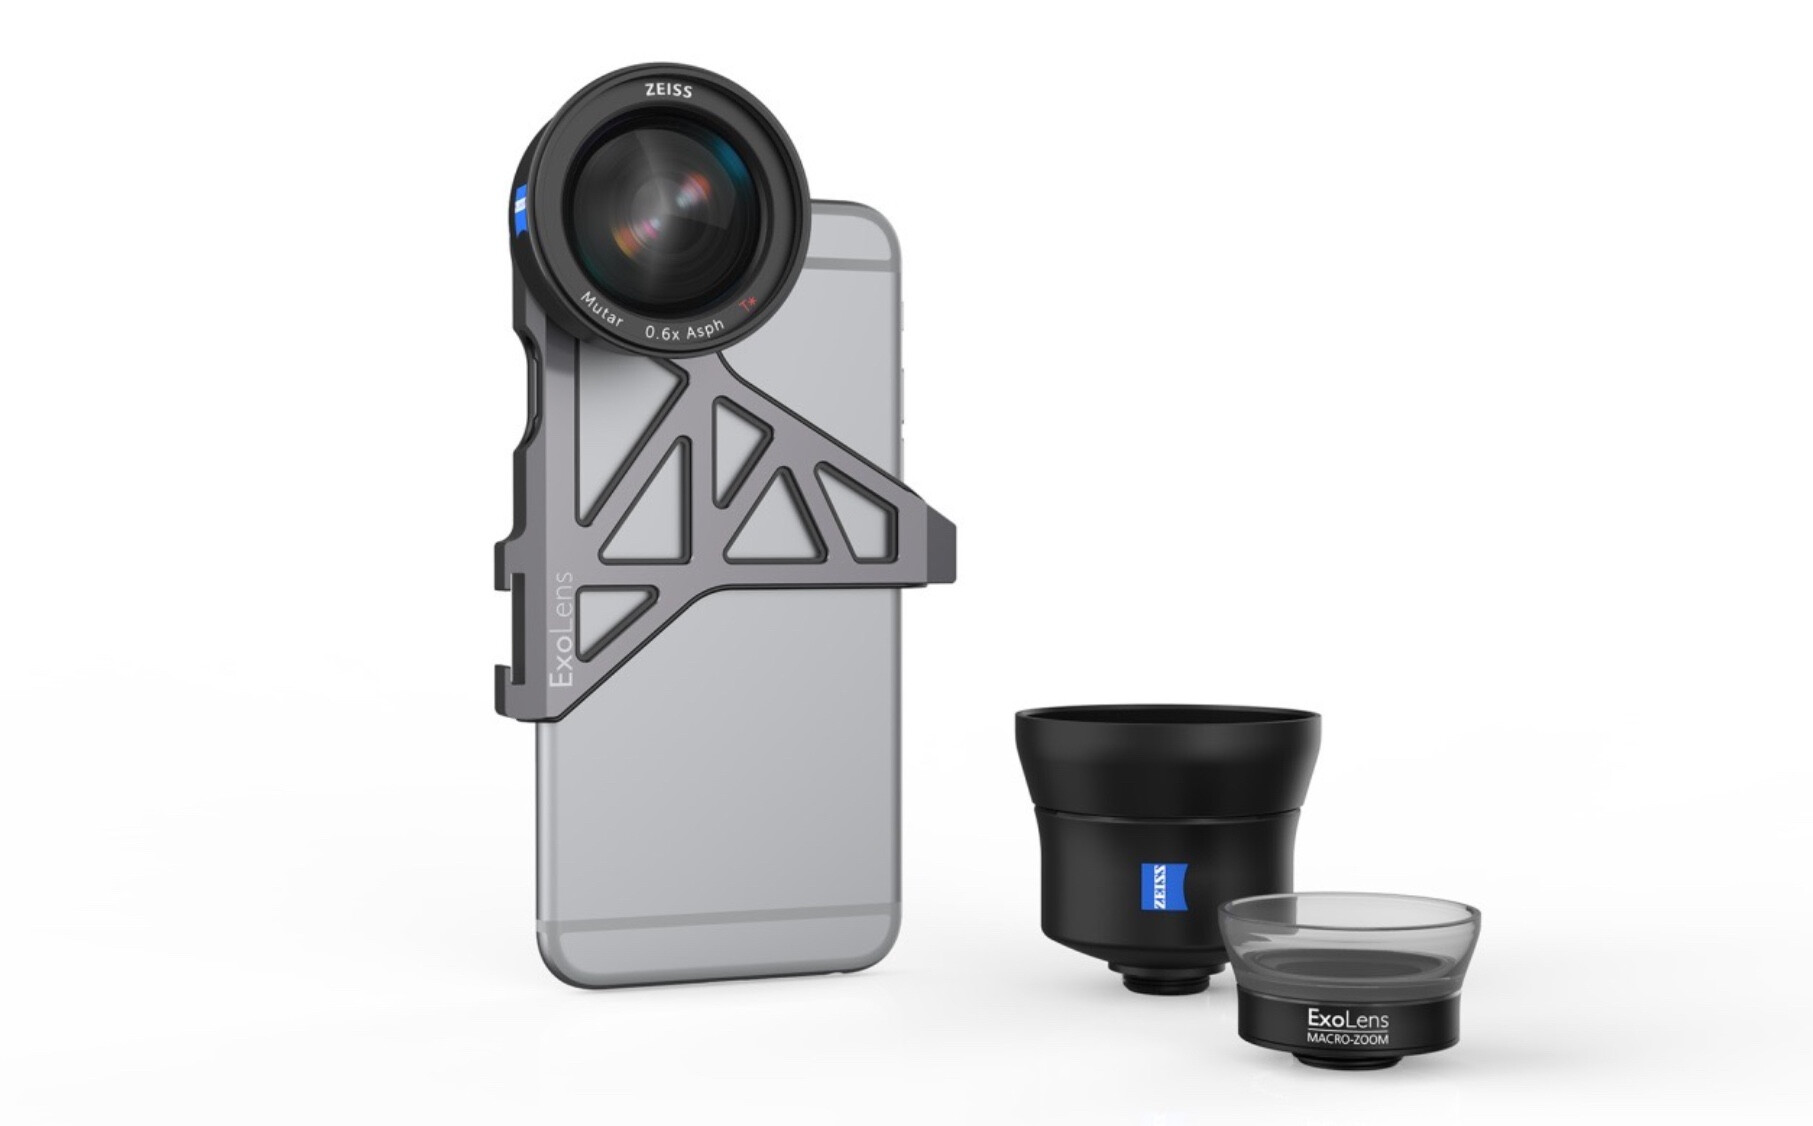 ExoLens shows premium iPhone camera lens attachments with ...